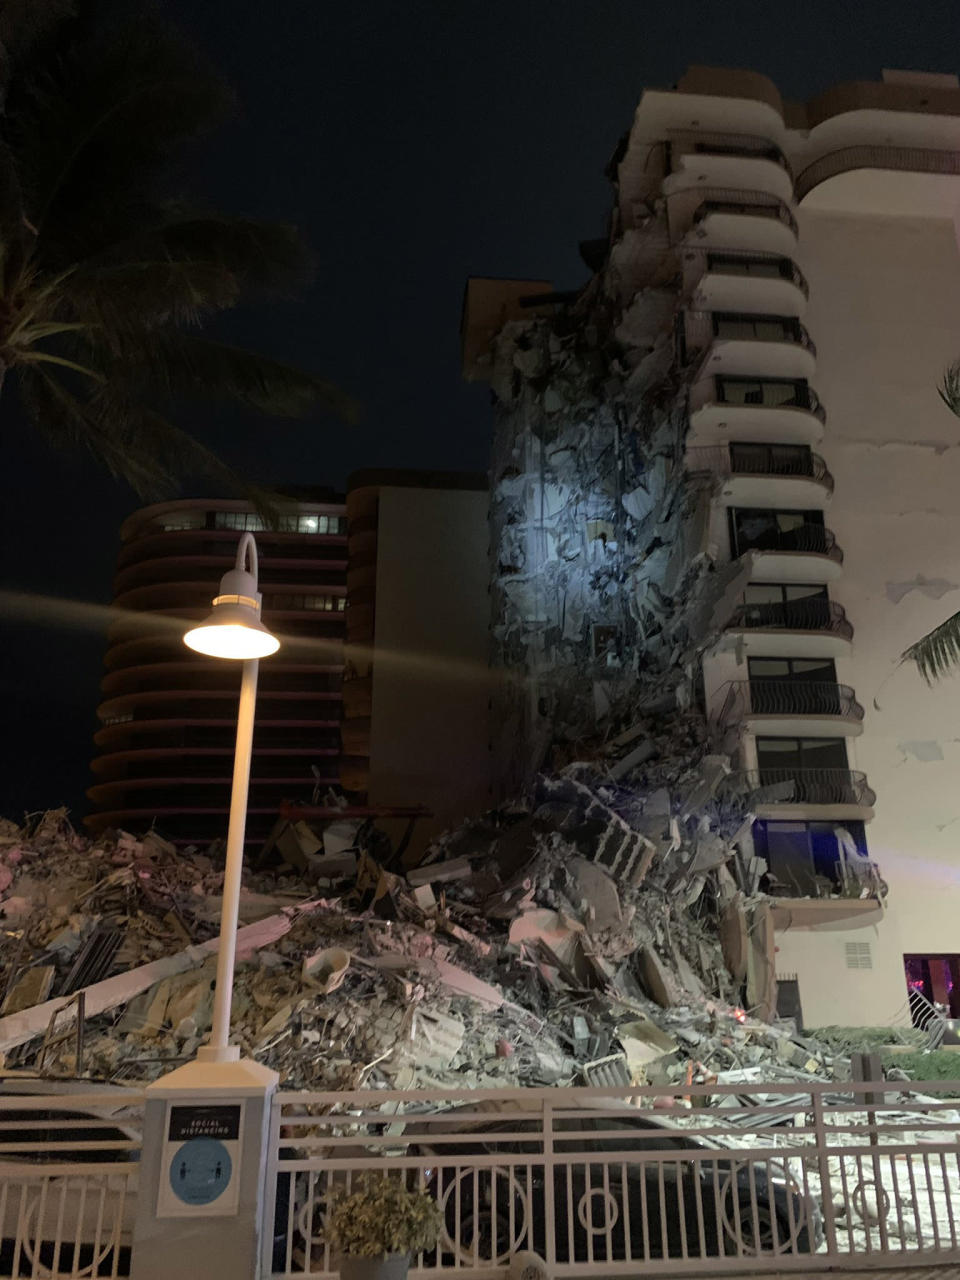 A high-rise residential building is partially collapsed in Surfside, Fla., Thursday, June 24, 2021. A large rescue effort is underway at the scene. (Miami Beach Police via The New York Times)